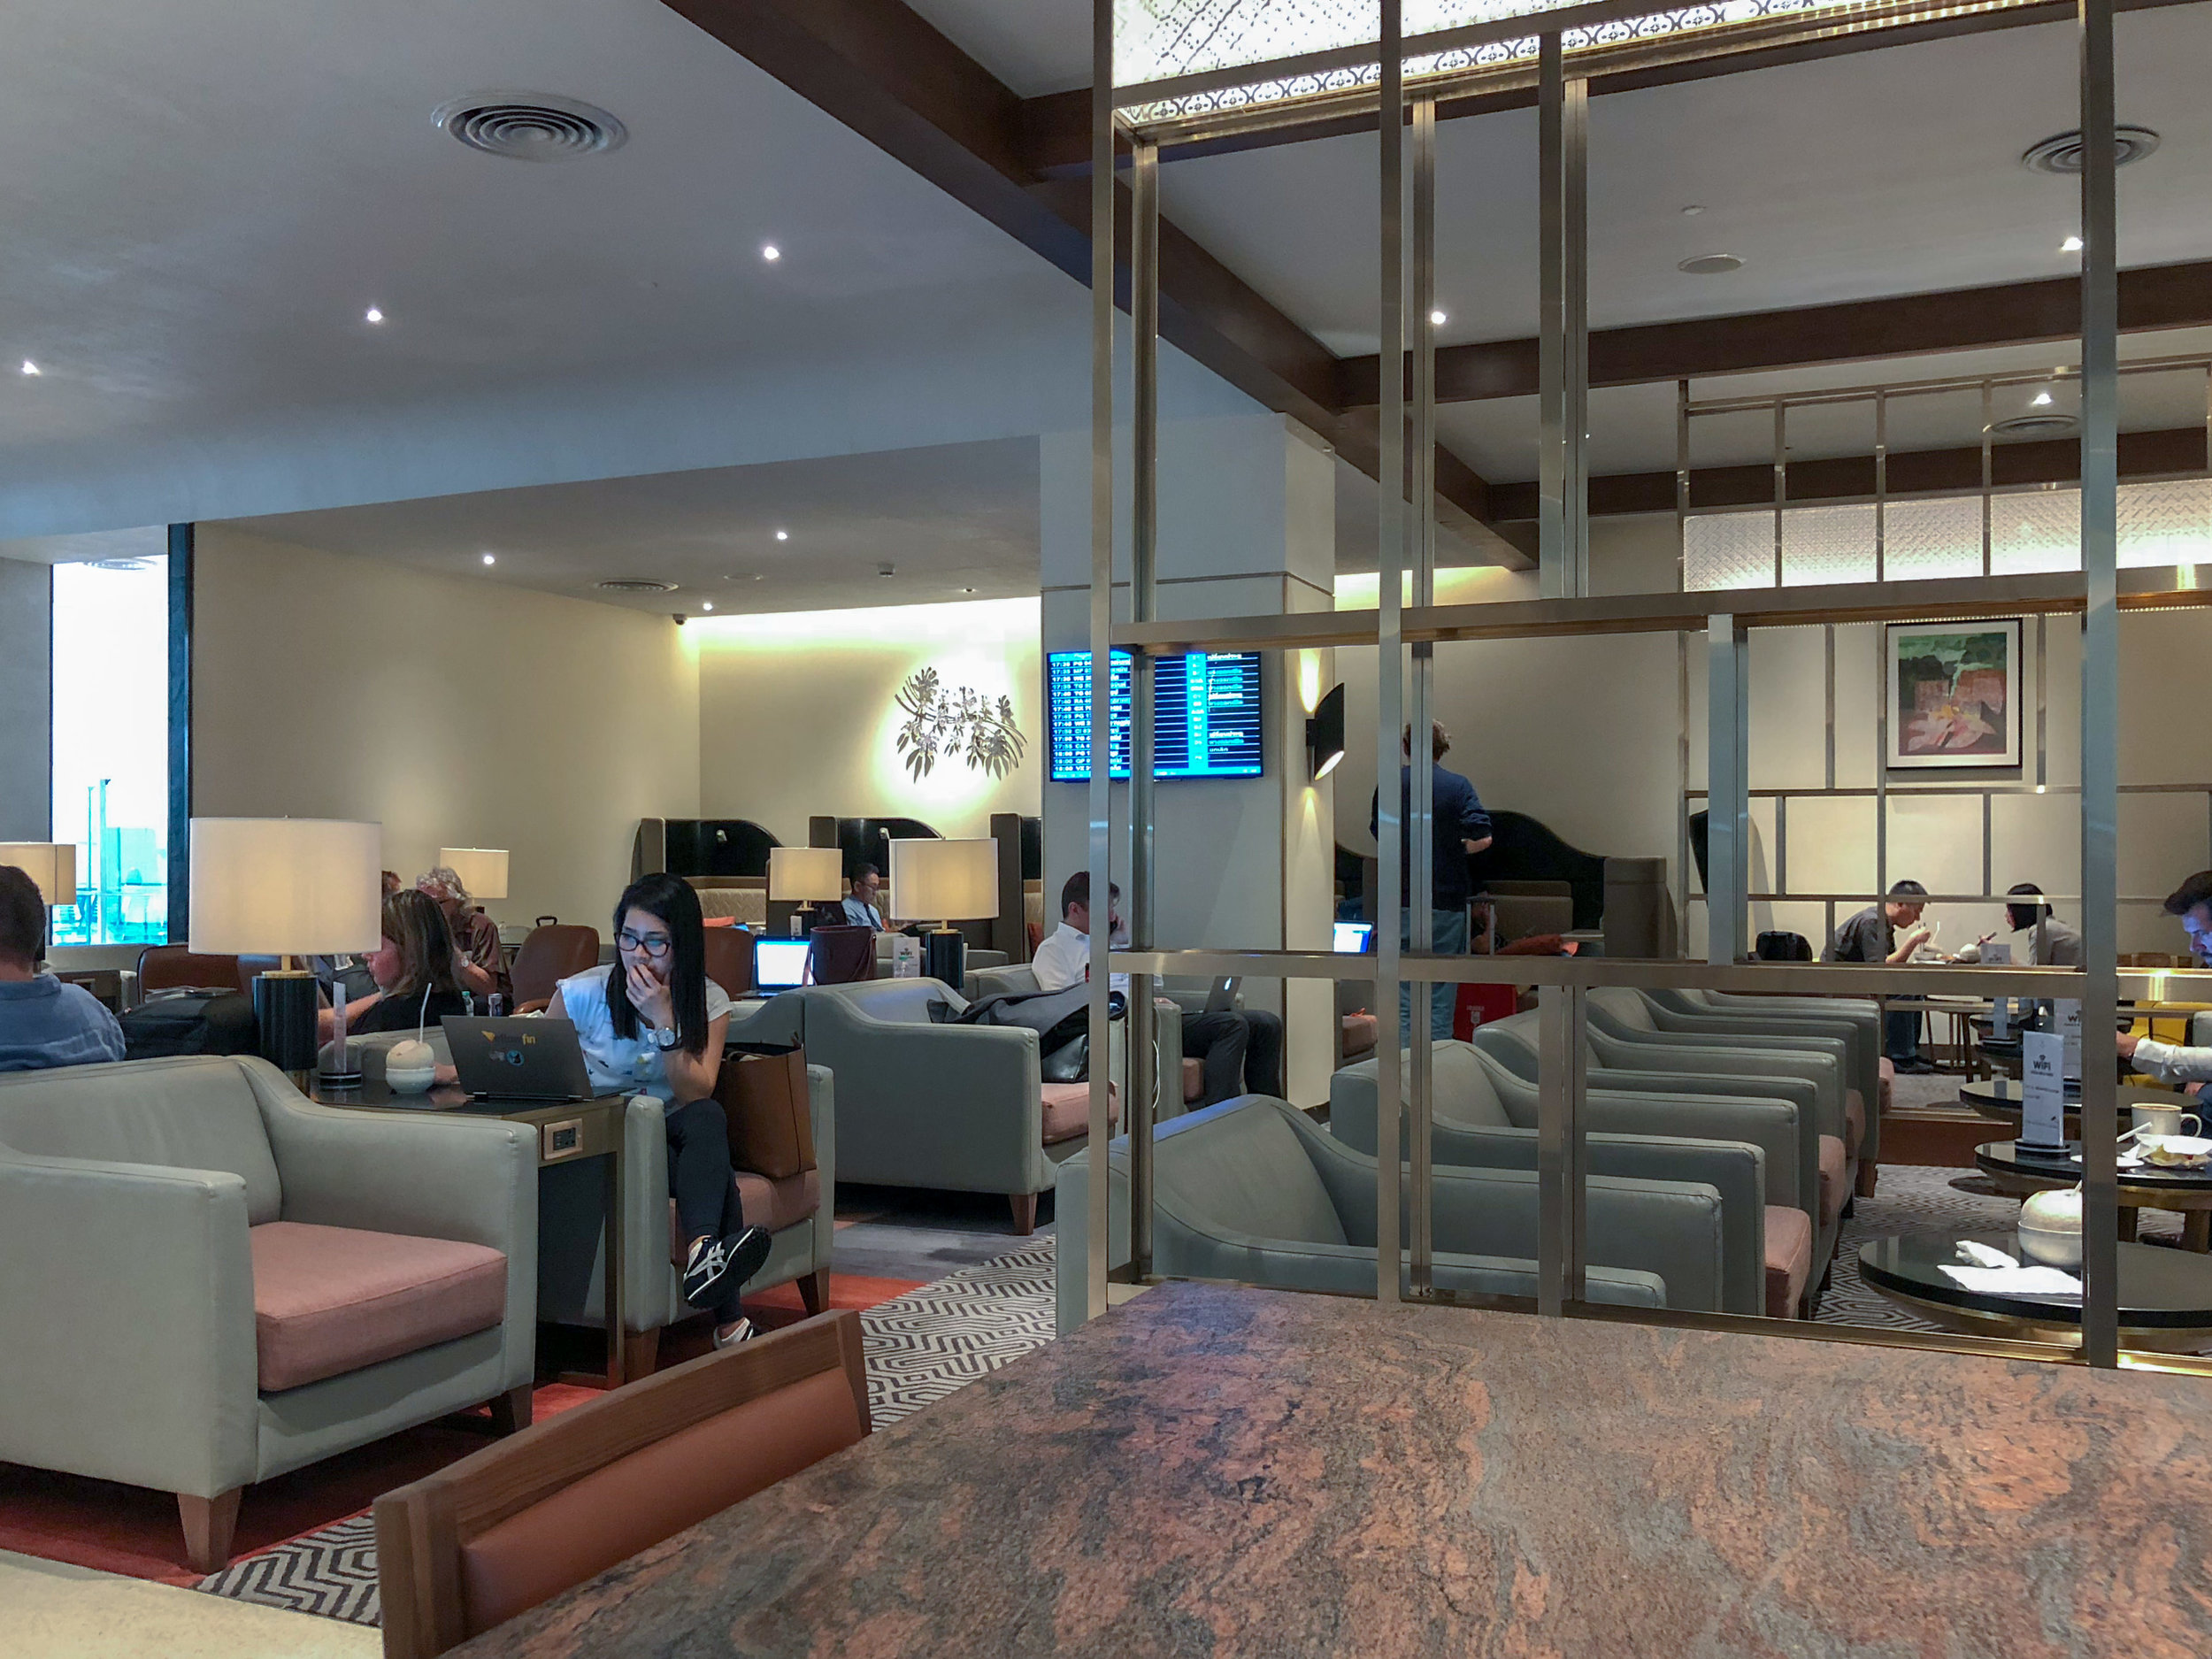 Lounge Review: Singapore Airlines SilverKris Lounge - Suvarnabhumi Airport  (BKK) — The Shutterwhale